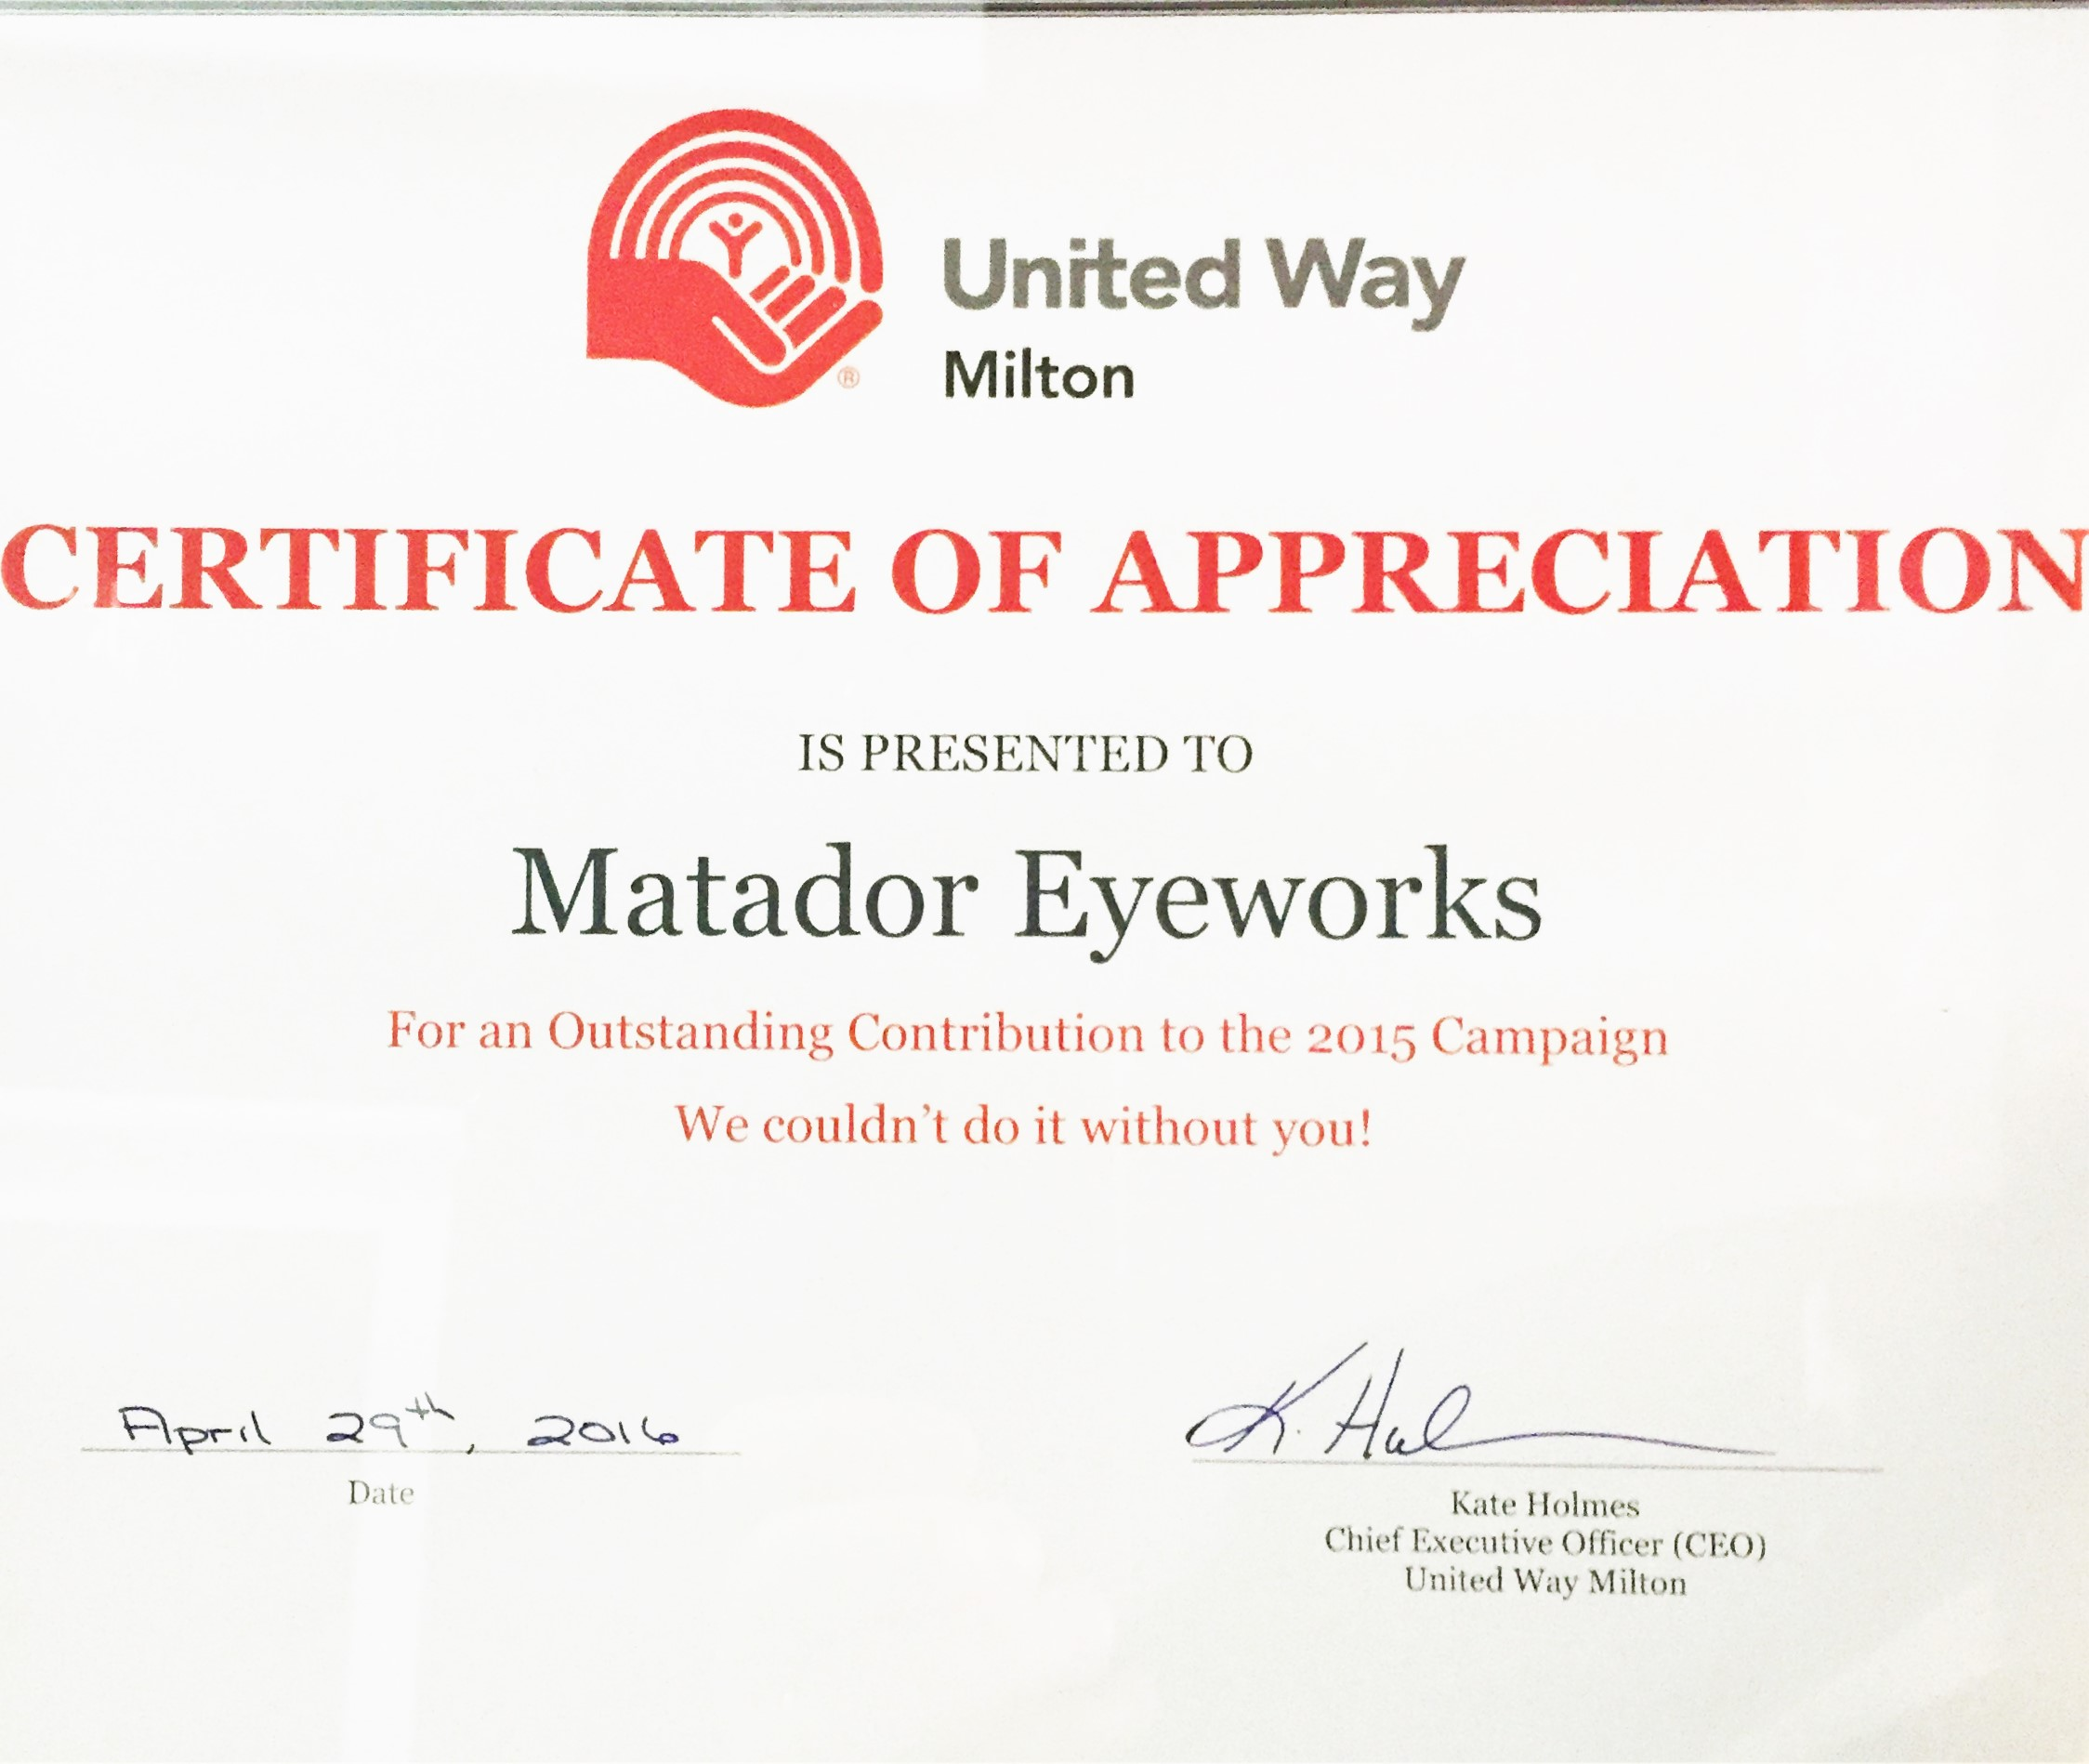 United Way Milton Certificate of Appreciation